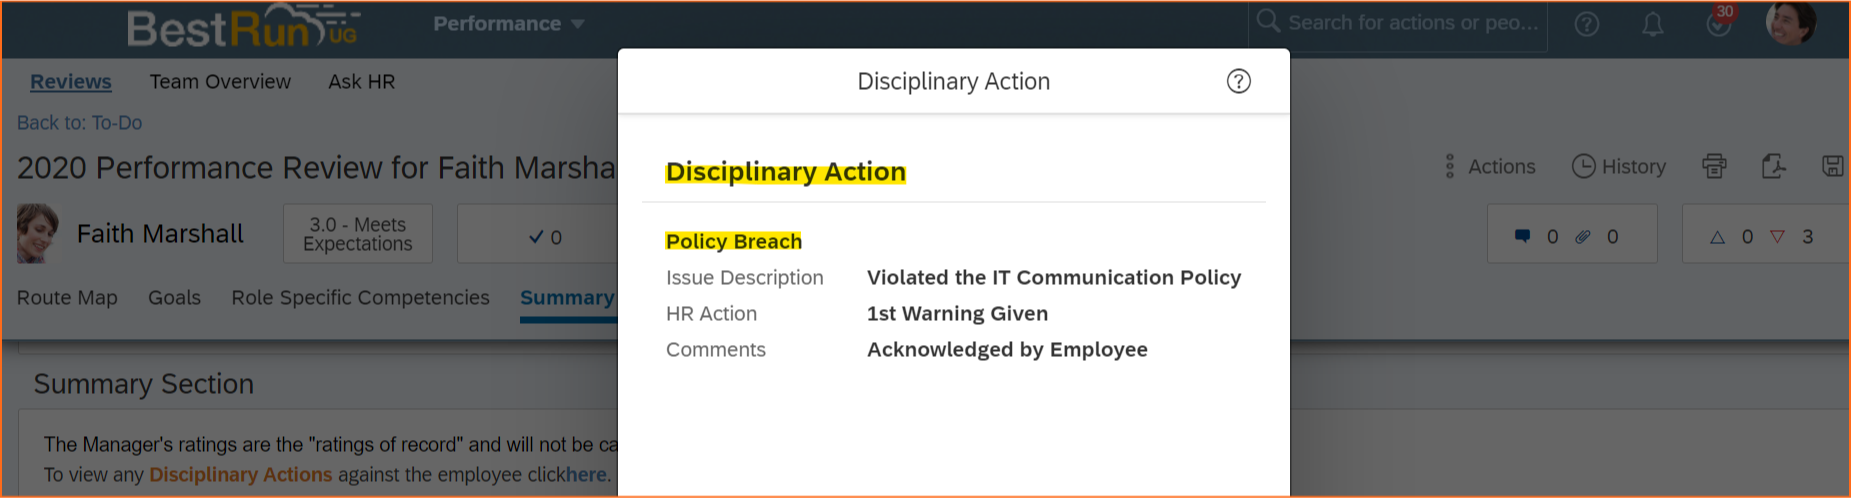 Disciplinary%20Action%20portlet%20-%20Read%20Only%20for%20Manager